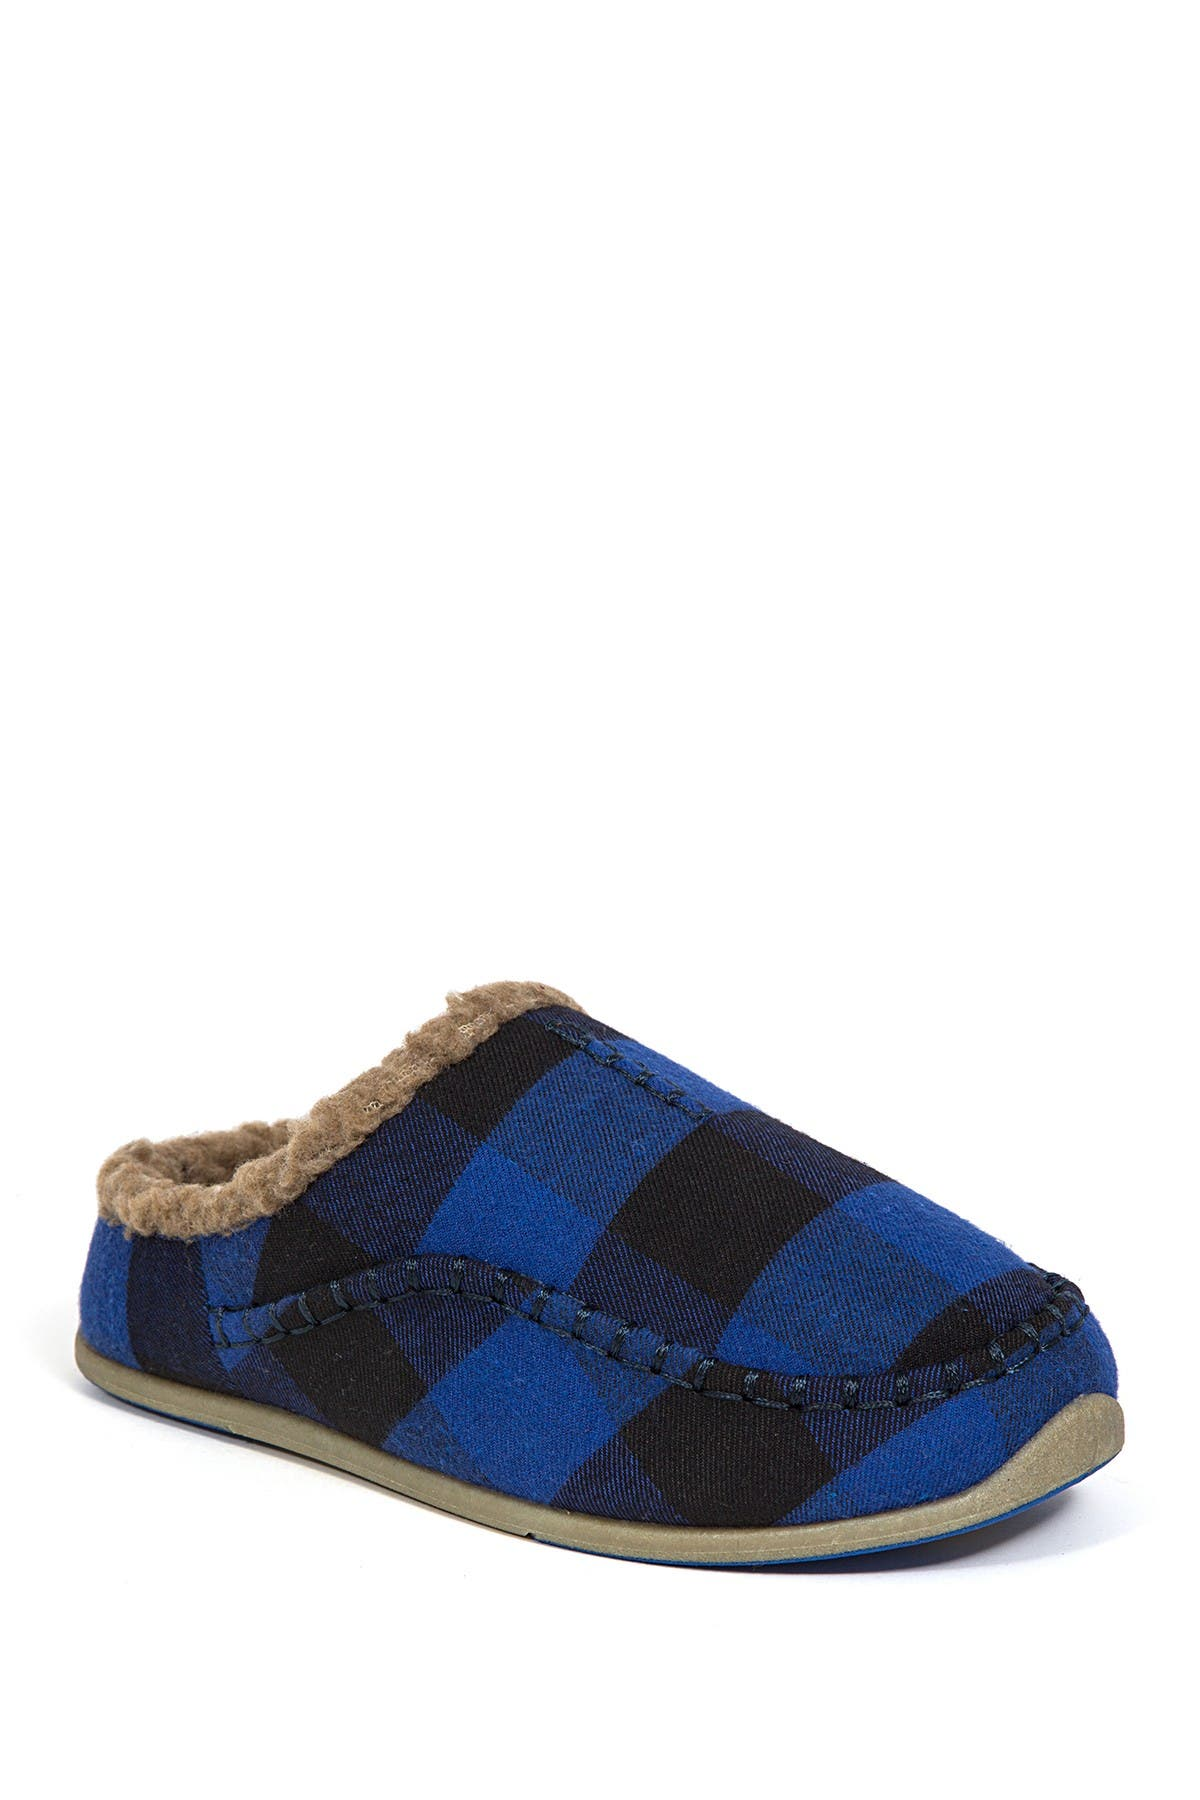 Image of Deer Stags Slipperooz Lil' Nordic Faux Shearling Lined Plaid Slipper